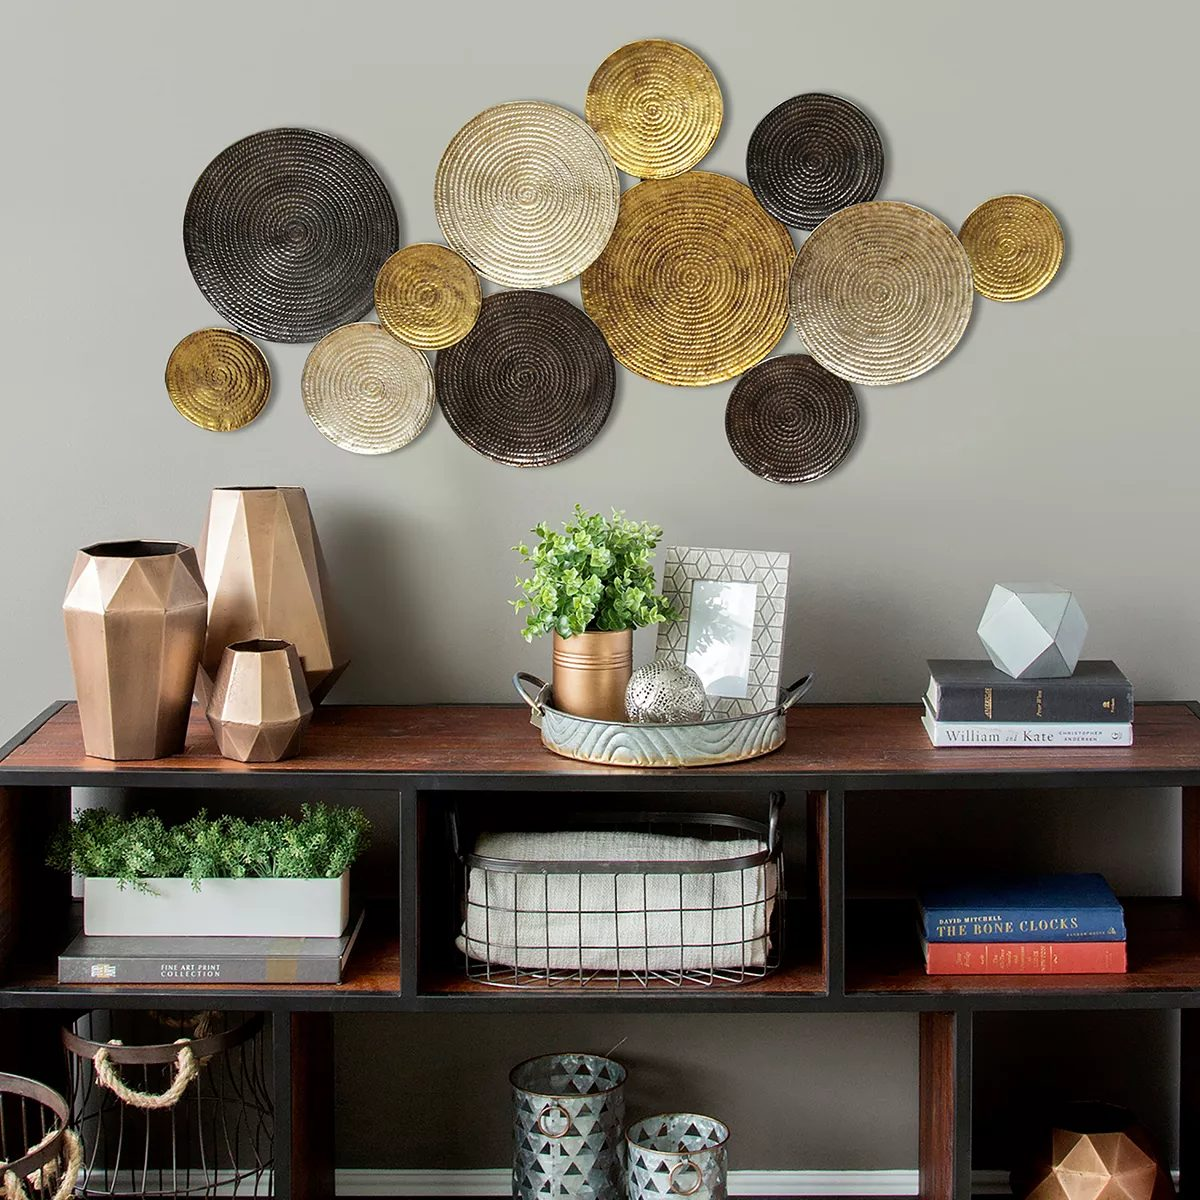 Round wall plates made of metal and gold